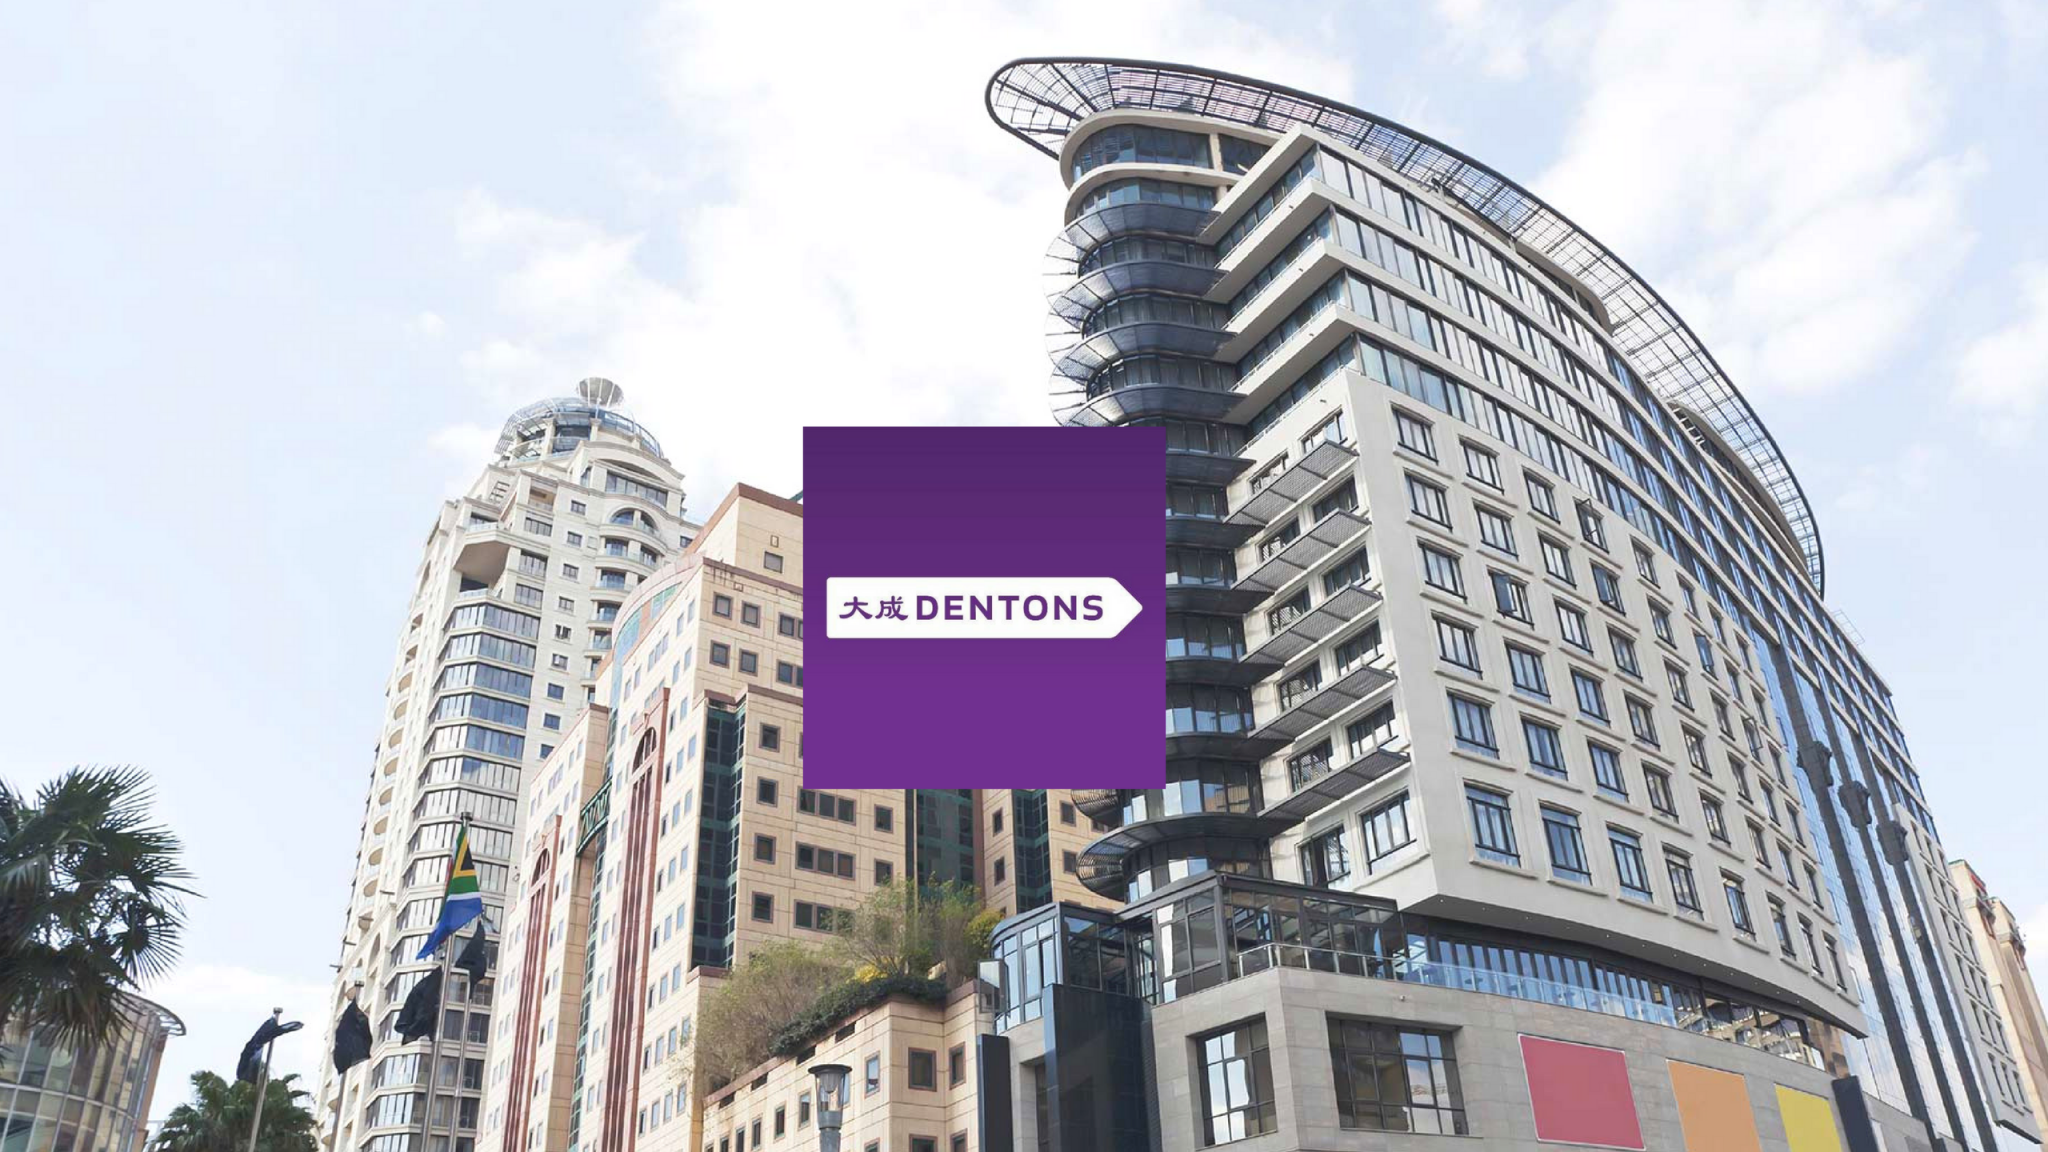 Dentons Best Law Firms in the World UpSlide Top 50